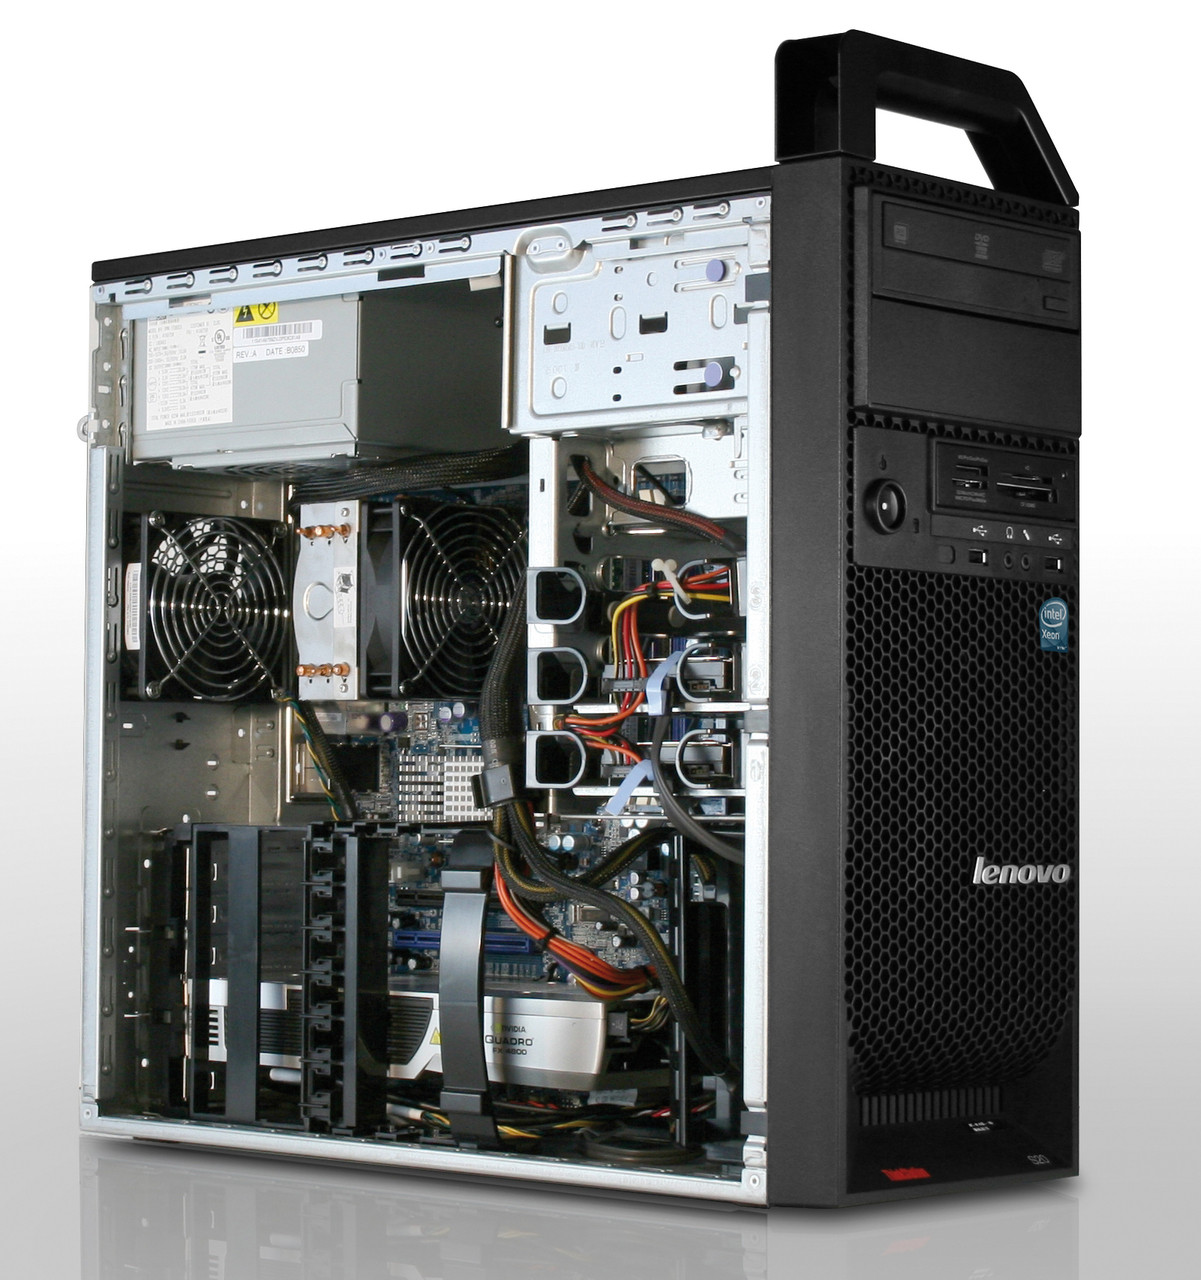 Lenovo Thinkcentre S20 Refurbished Workstation Computer